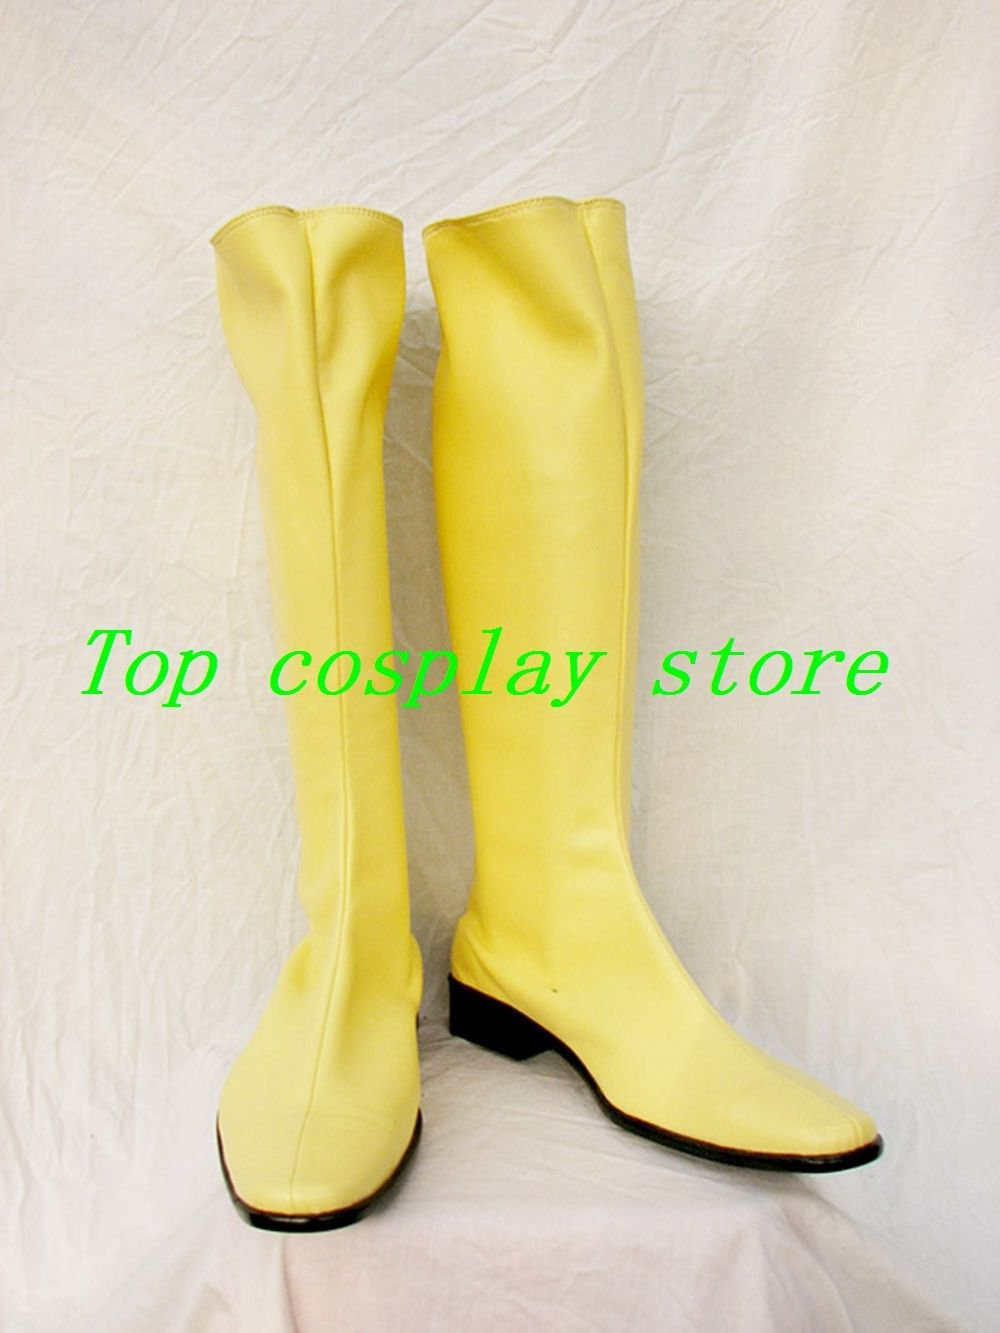 Mobile Suit Gundam SEED Bright Noa Bright Noah Fllay Allster Cosplay Shoes boot